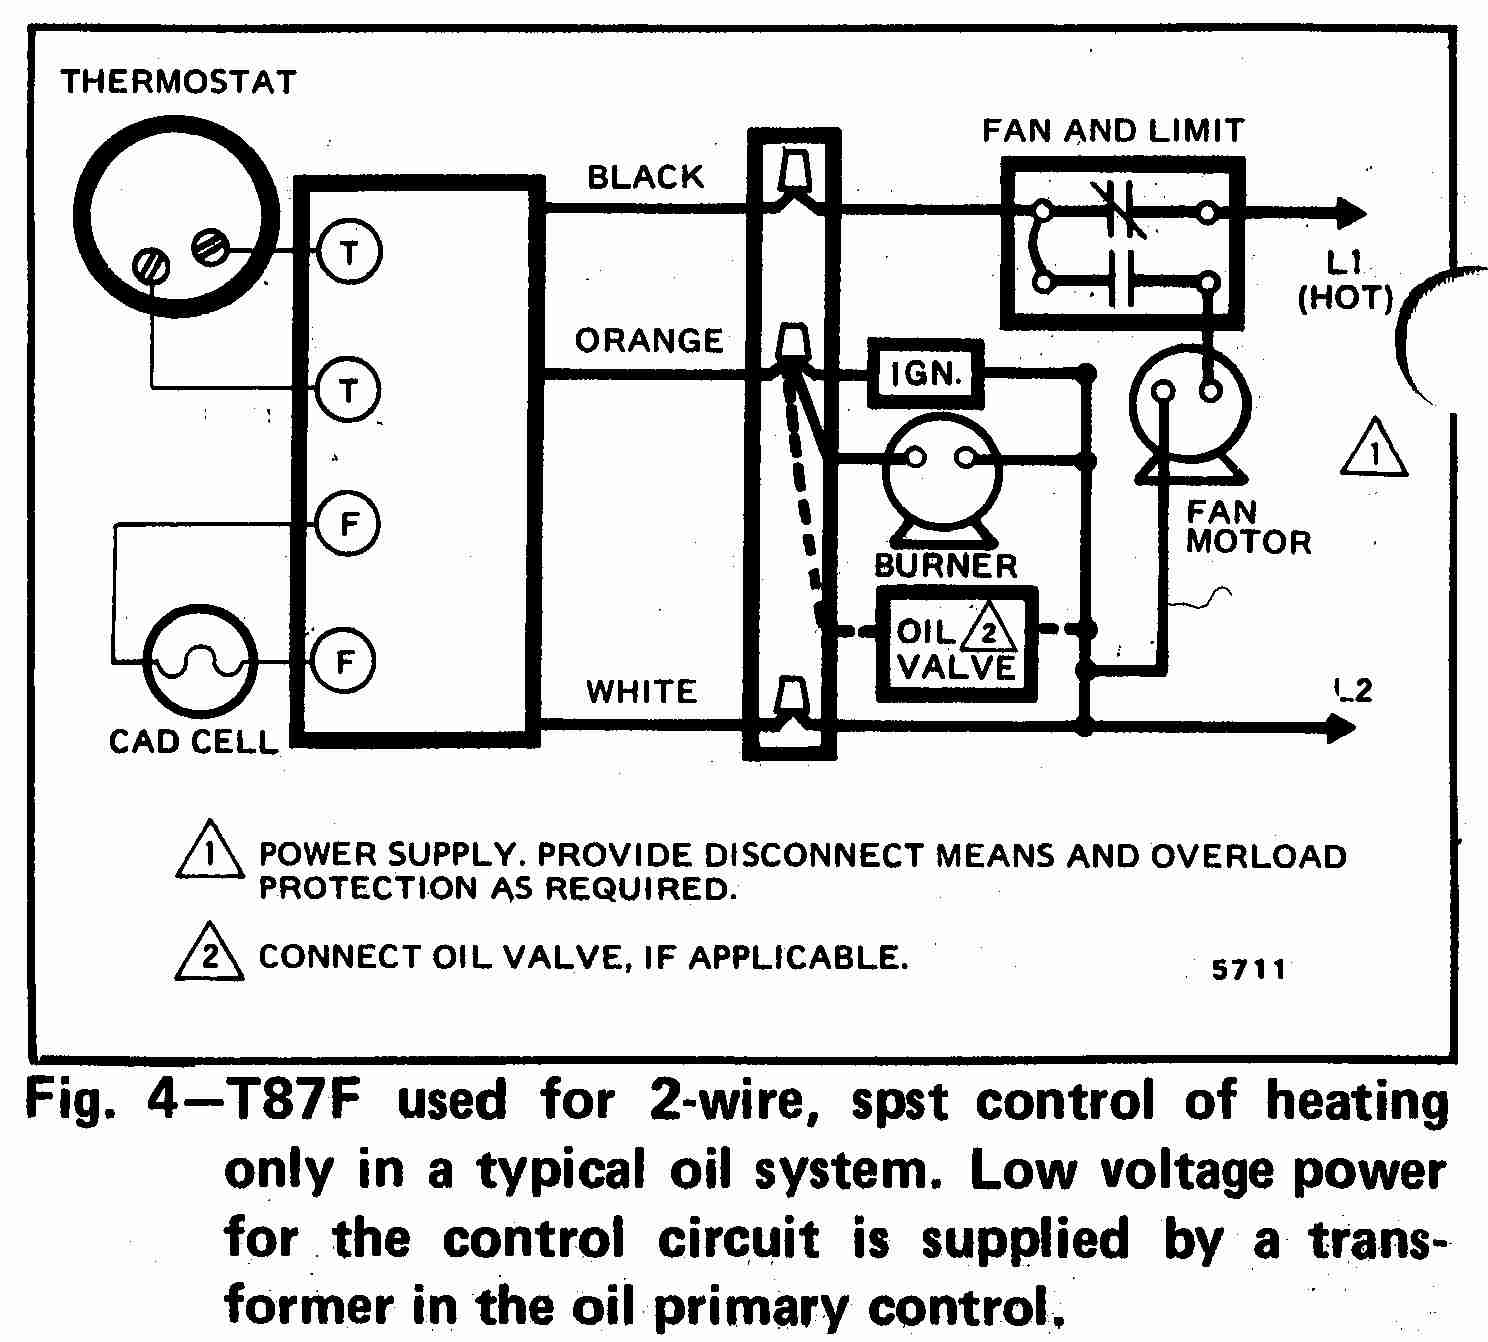 Hvac Wiring Diagrams - wiring diagram on the net on